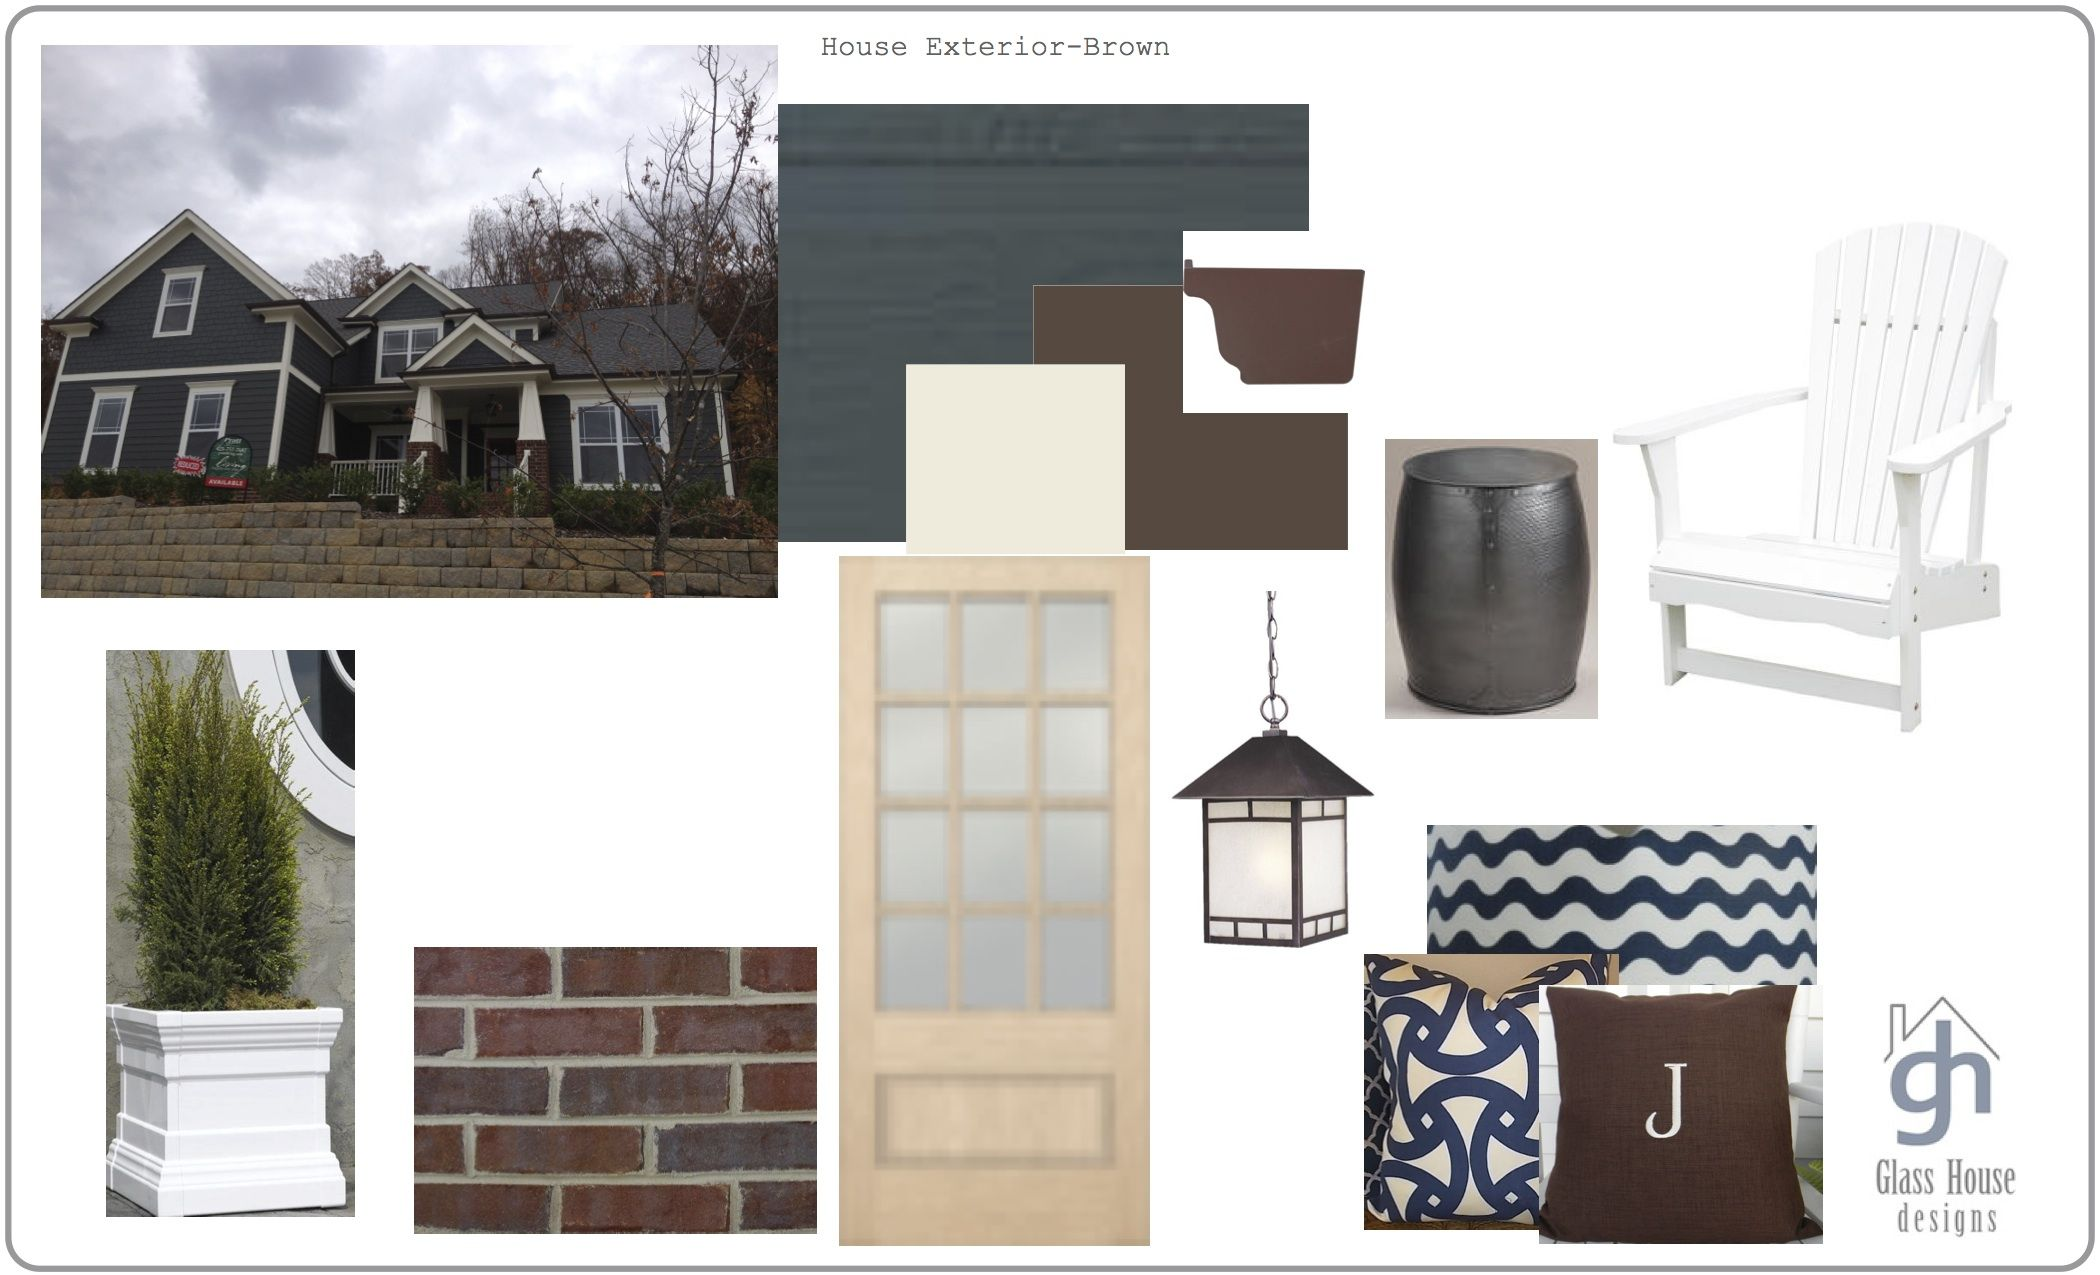 Surprising Front Door Color Ideas For Brown House Images - Ideas ...